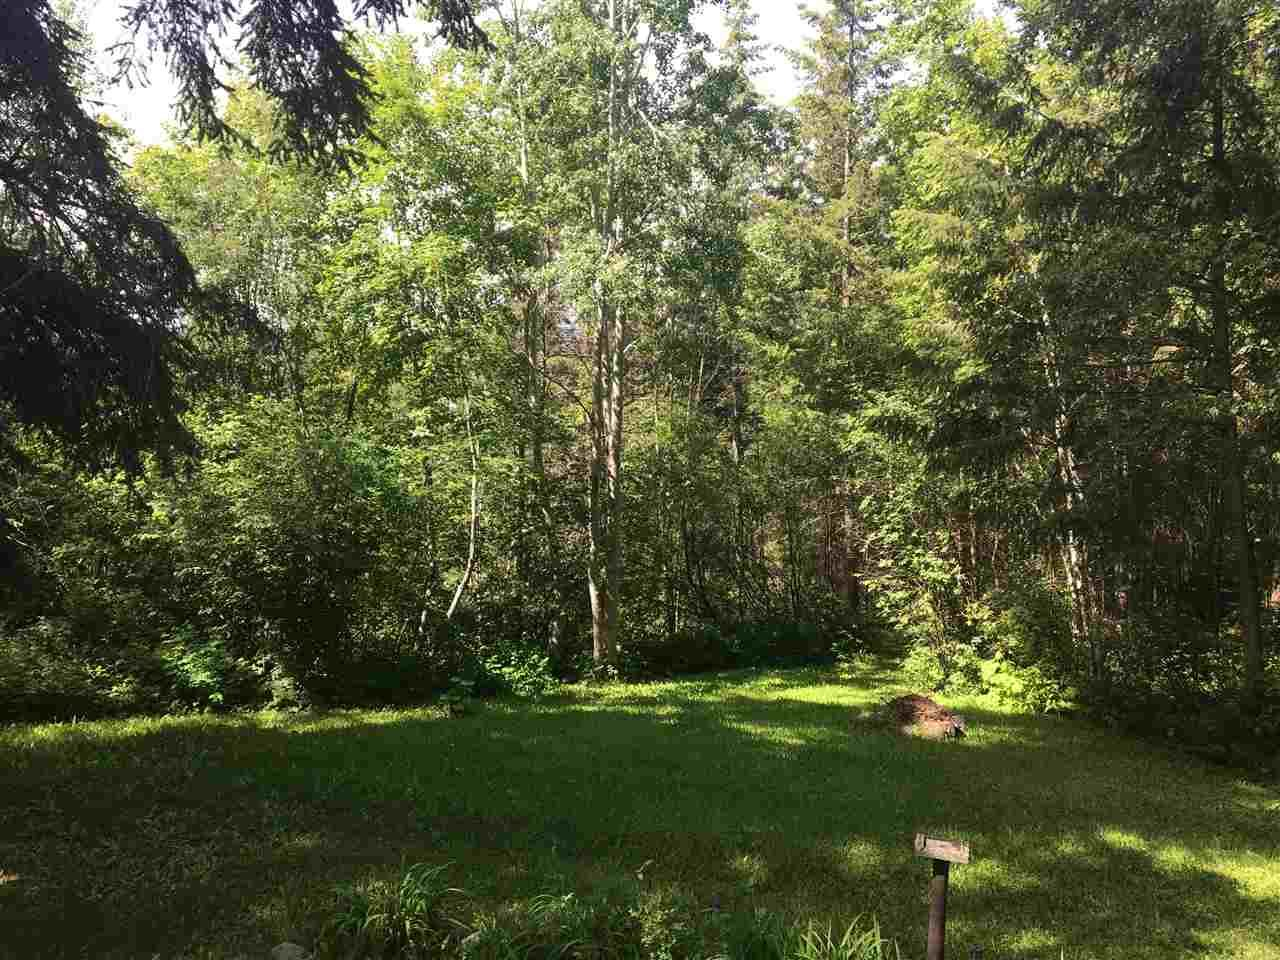 Photo 18: Photos: 341 RICHARDS Road in Quesnel: Quesnel - Town House for sale (Quesnel (Zone 28))  : MLS®# R2279651